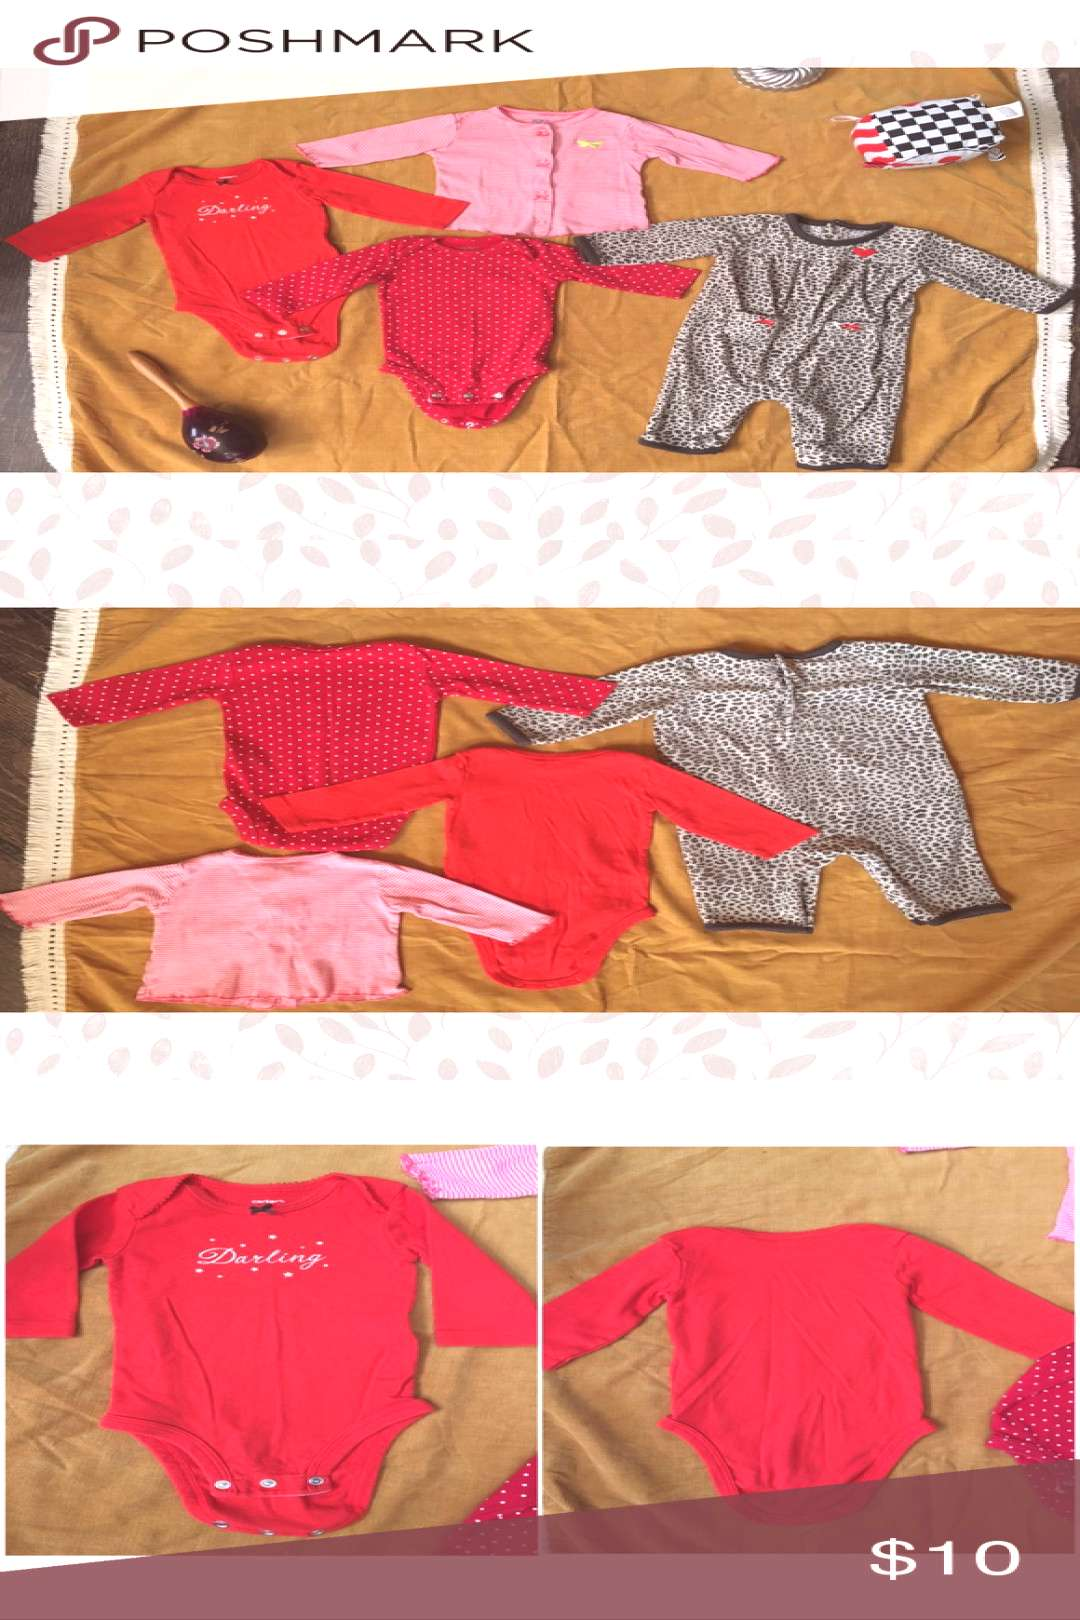 Darling leopard ?? winter autumn onesies lot A sweet lil' lot of cold we...